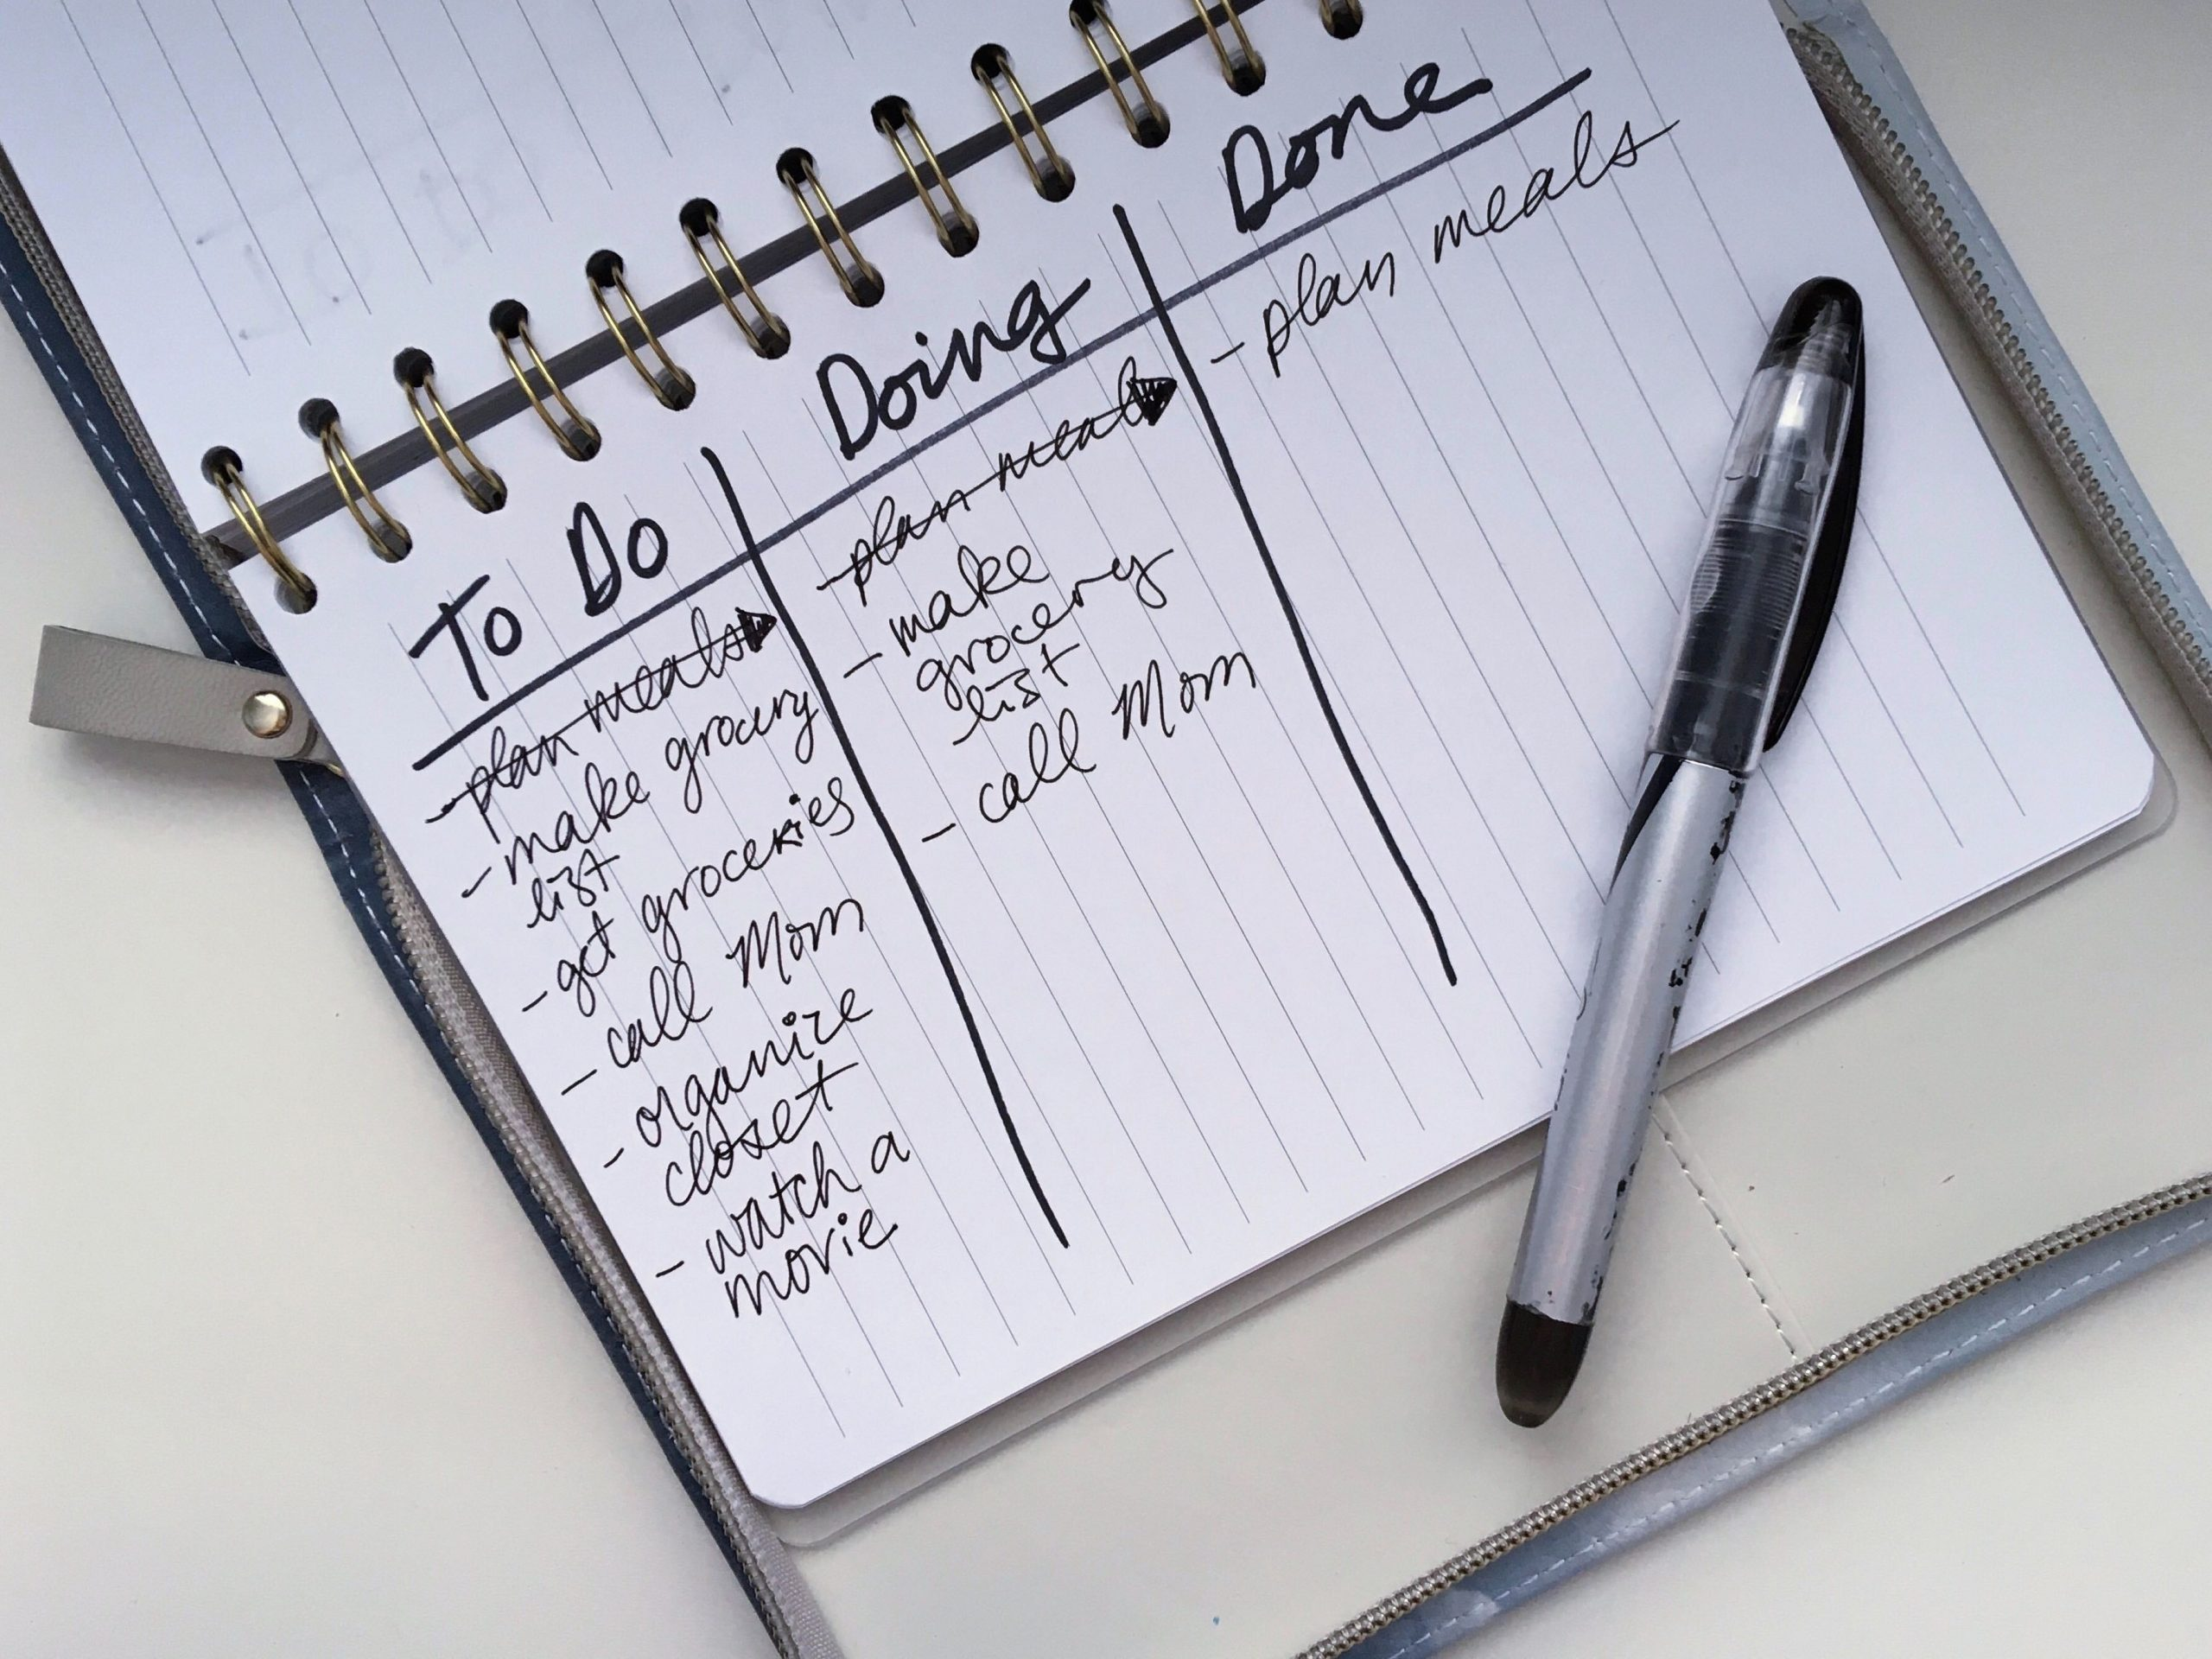 A notebook with the headings to do, doing and done, and lists under each.